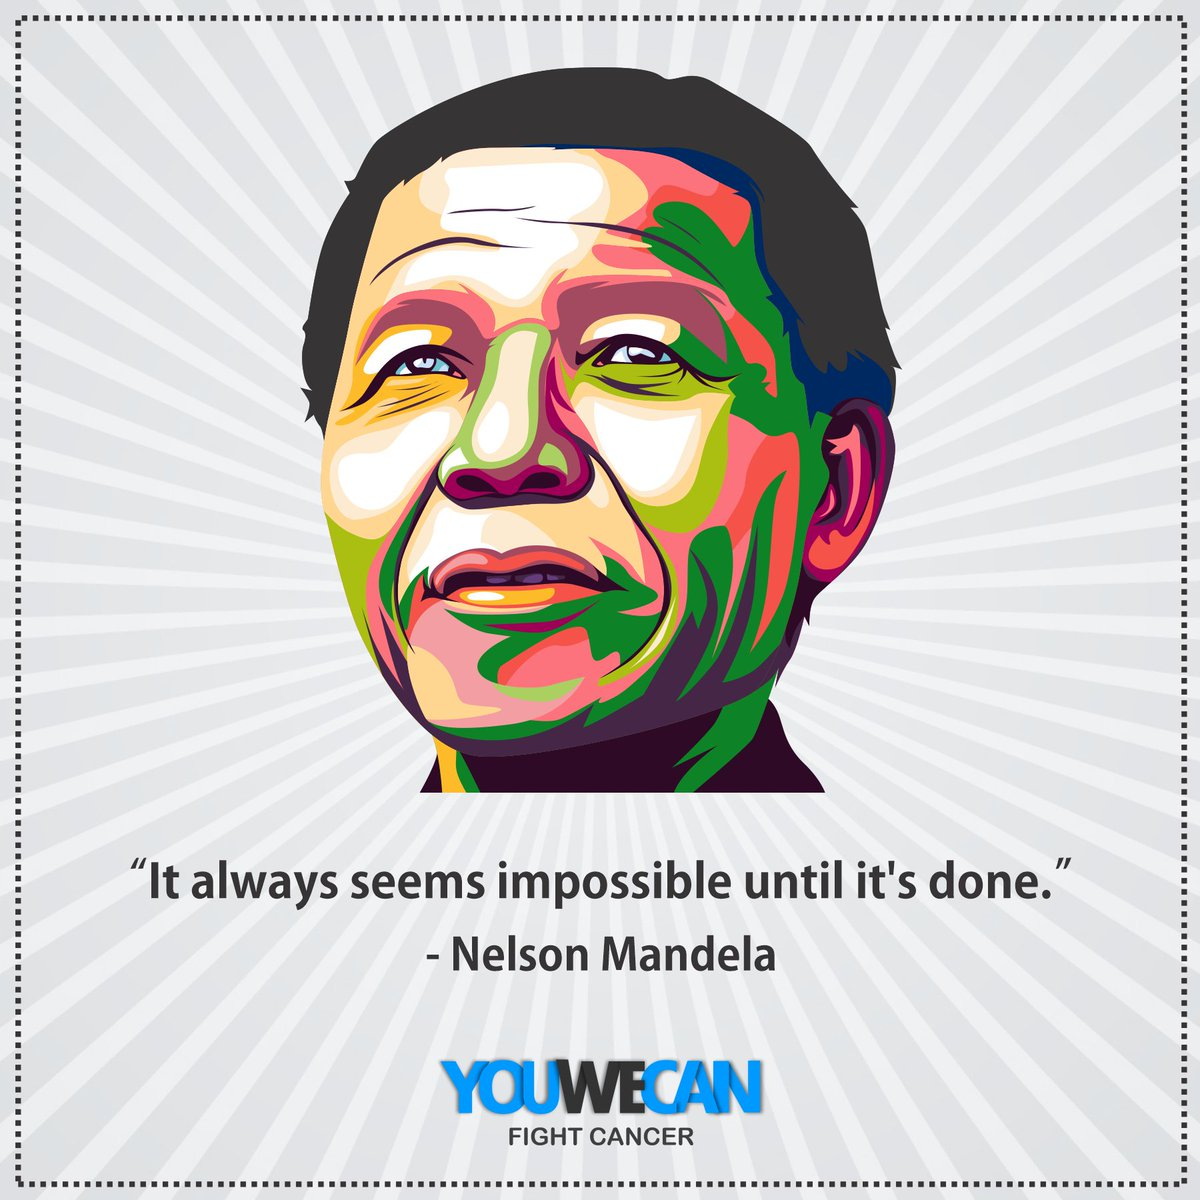 His words are as true today, as they were when he first spoke them. Happy Nelson Mandela International Day!#NelsonMandelaDay#Youwecan #togetherwecan #fight #cancer #determination #SpreadLove #staystrong@YUVSTRONG12 @hazelkeech